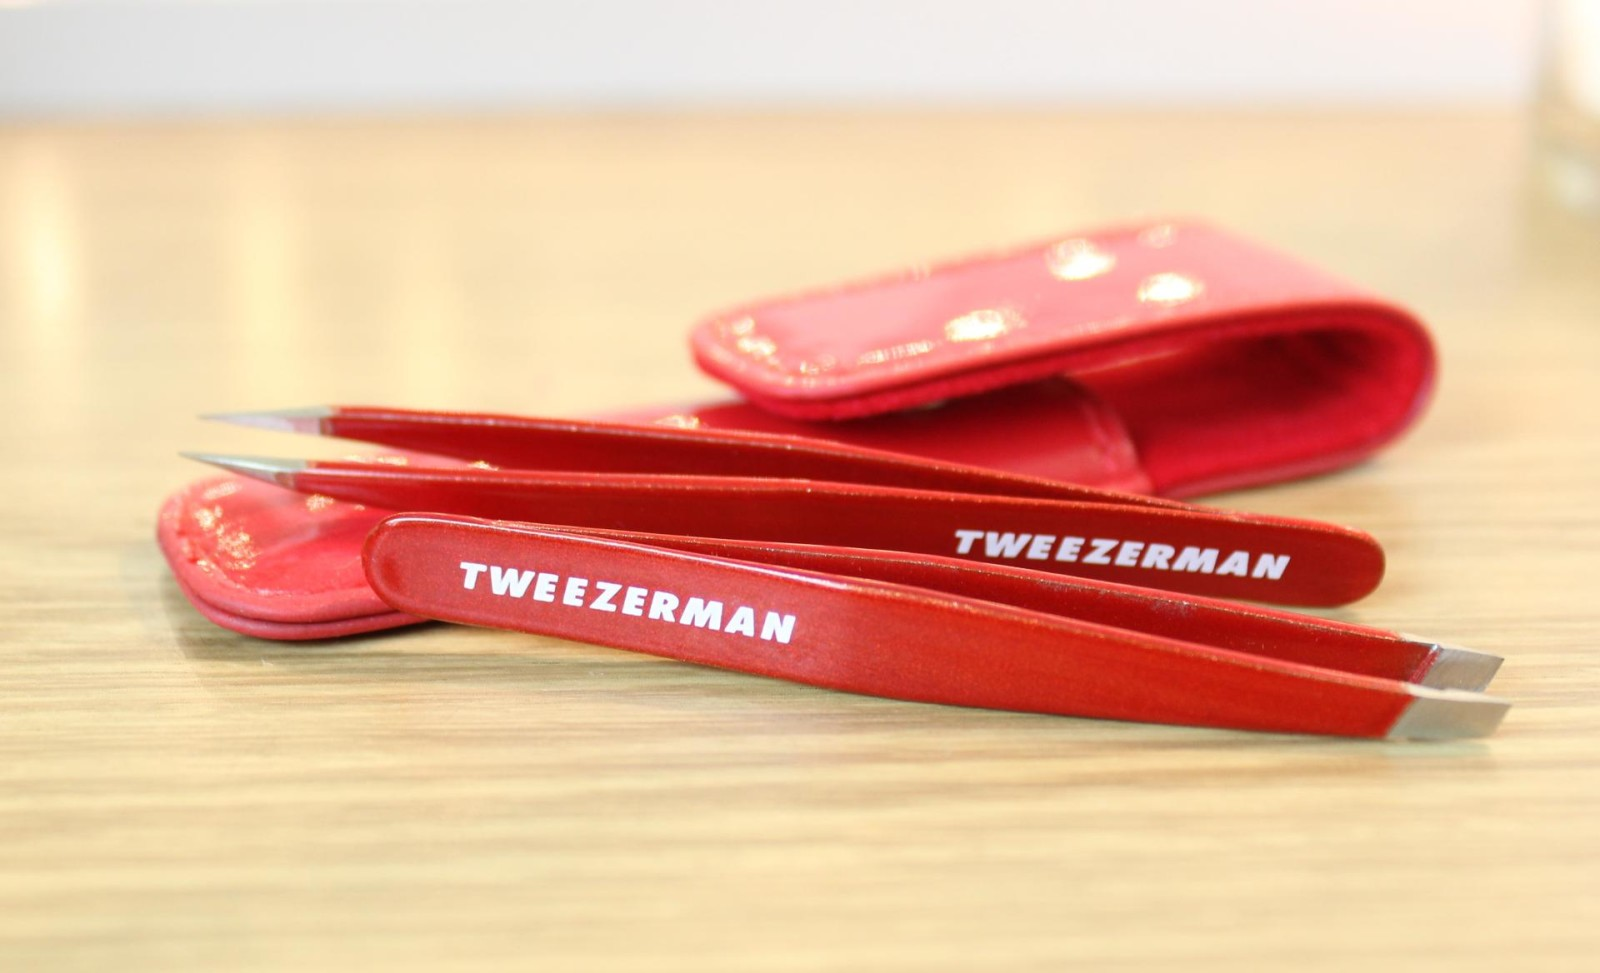 Tweezerman Autumn Collection